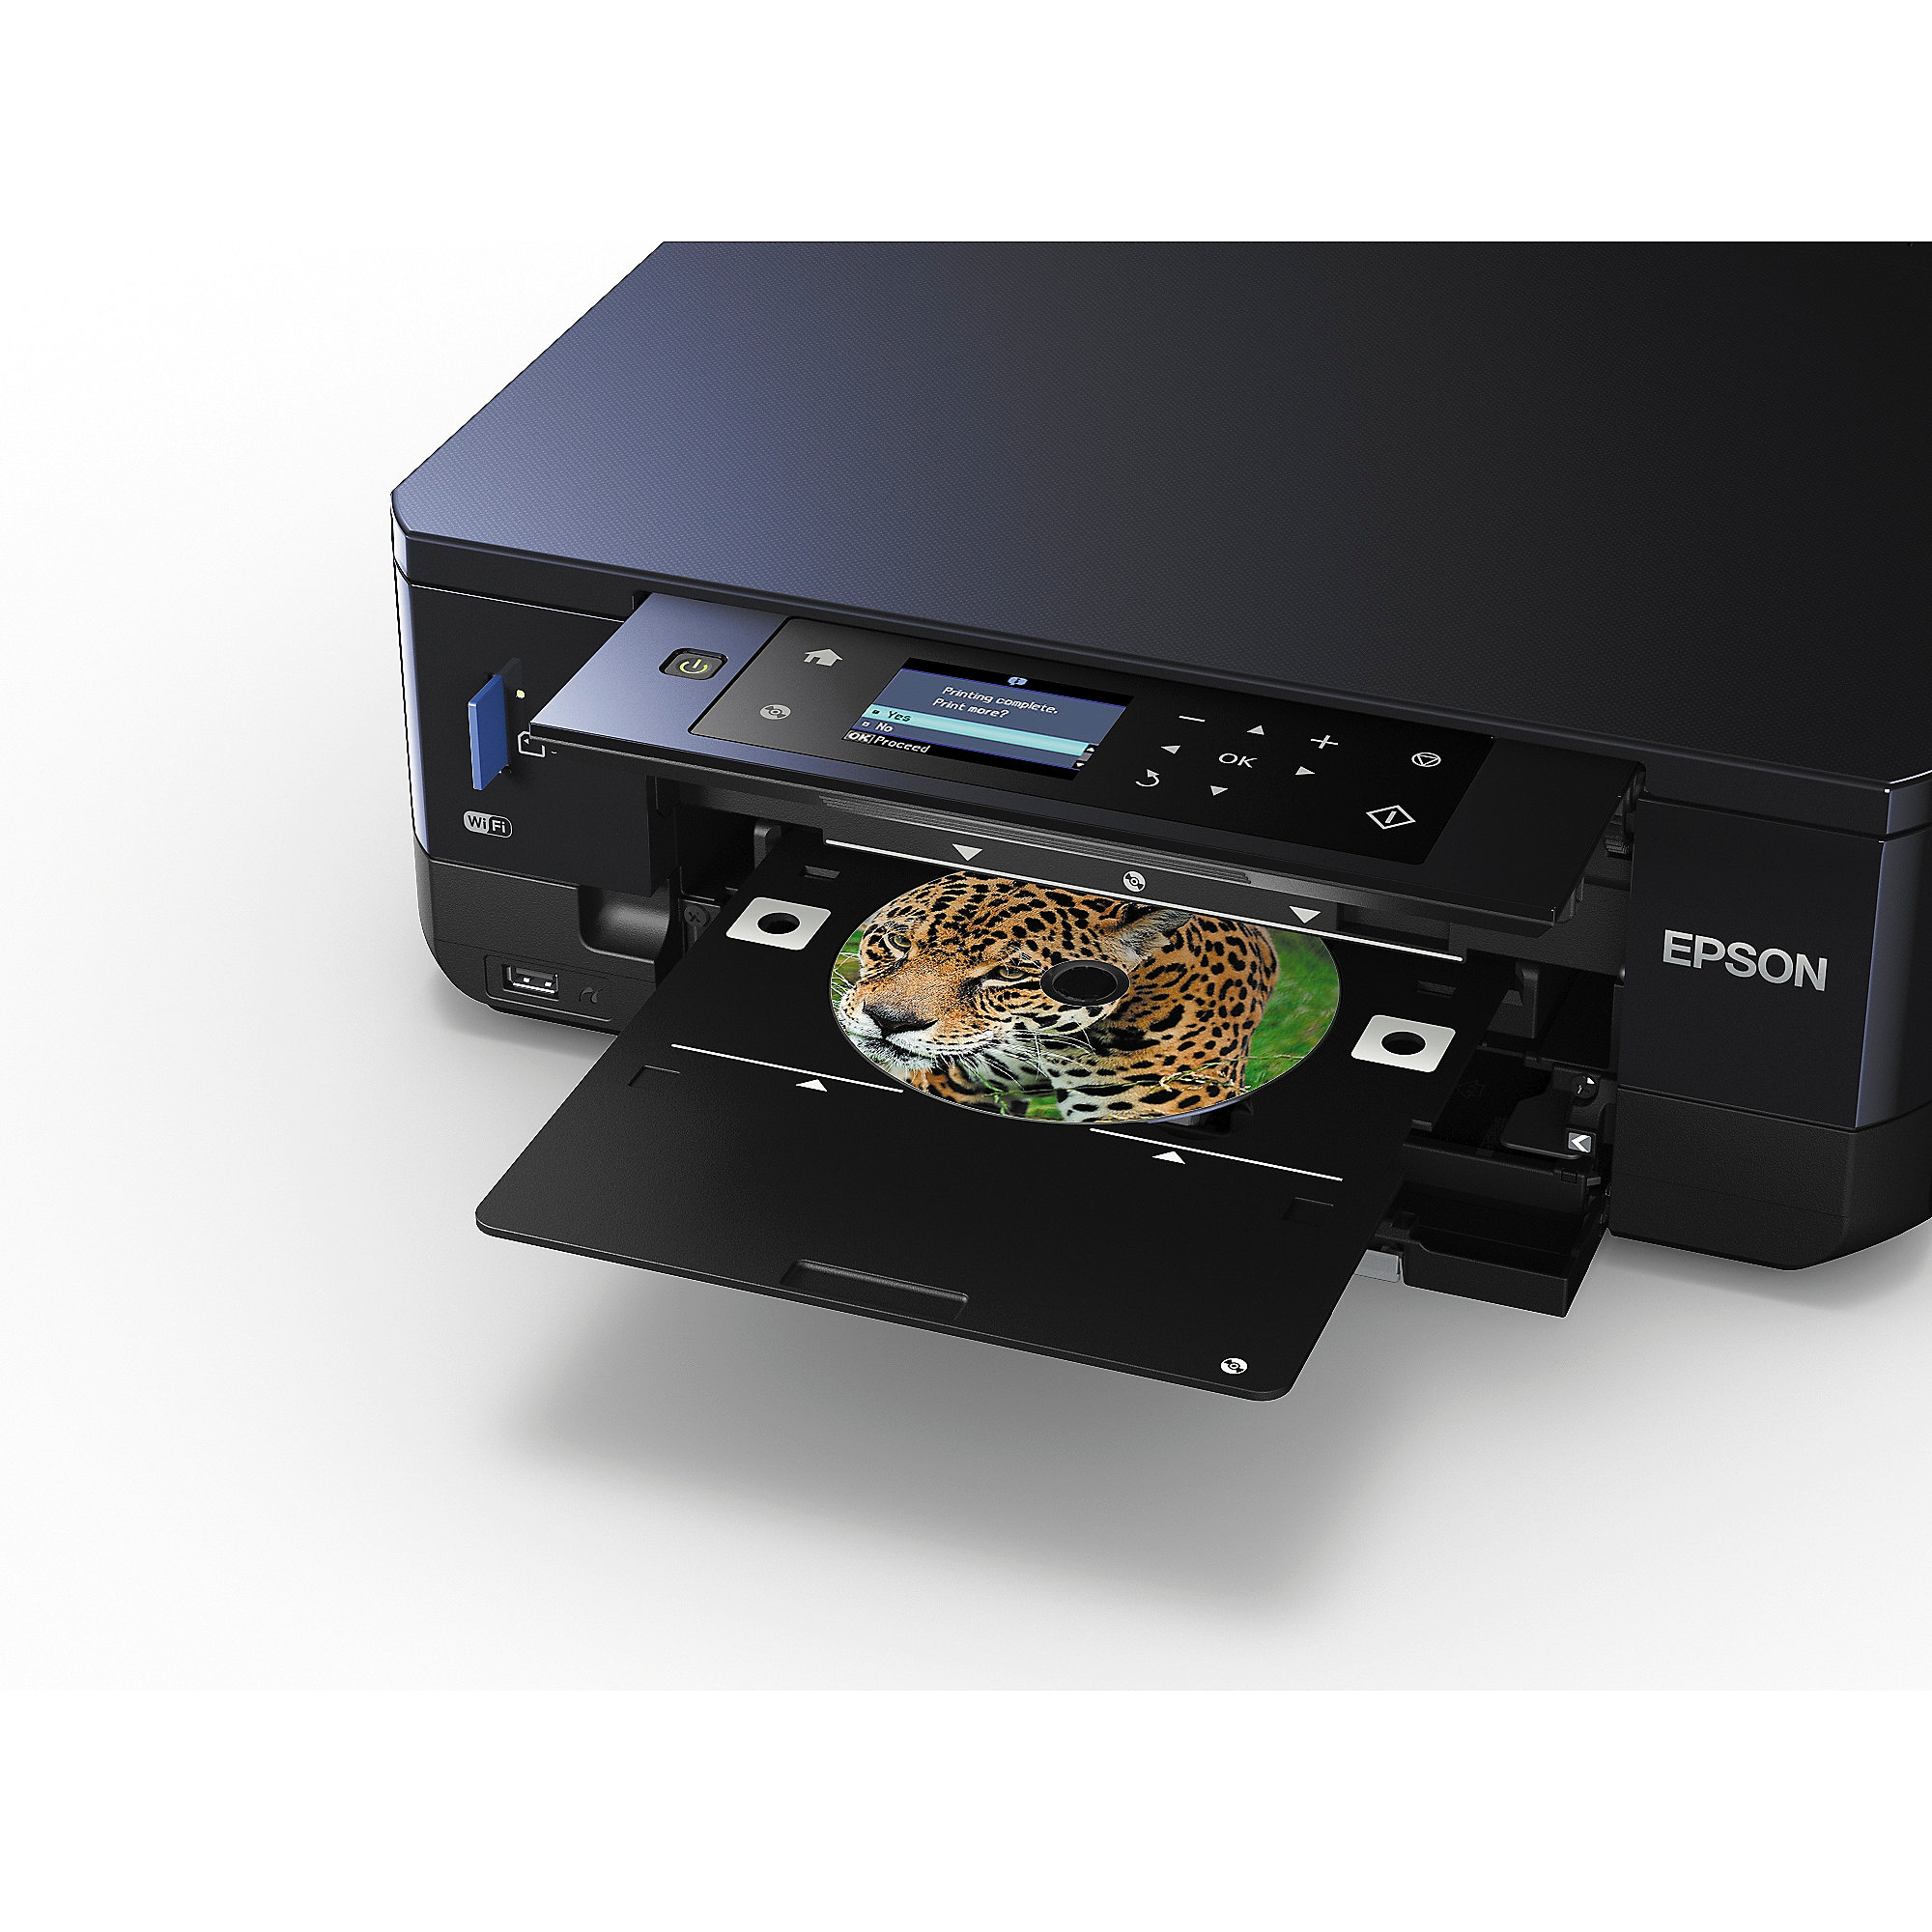 EPSON Expression Premium XP-640 Multifunktionsdrucker Scanner Kopierer WLAN